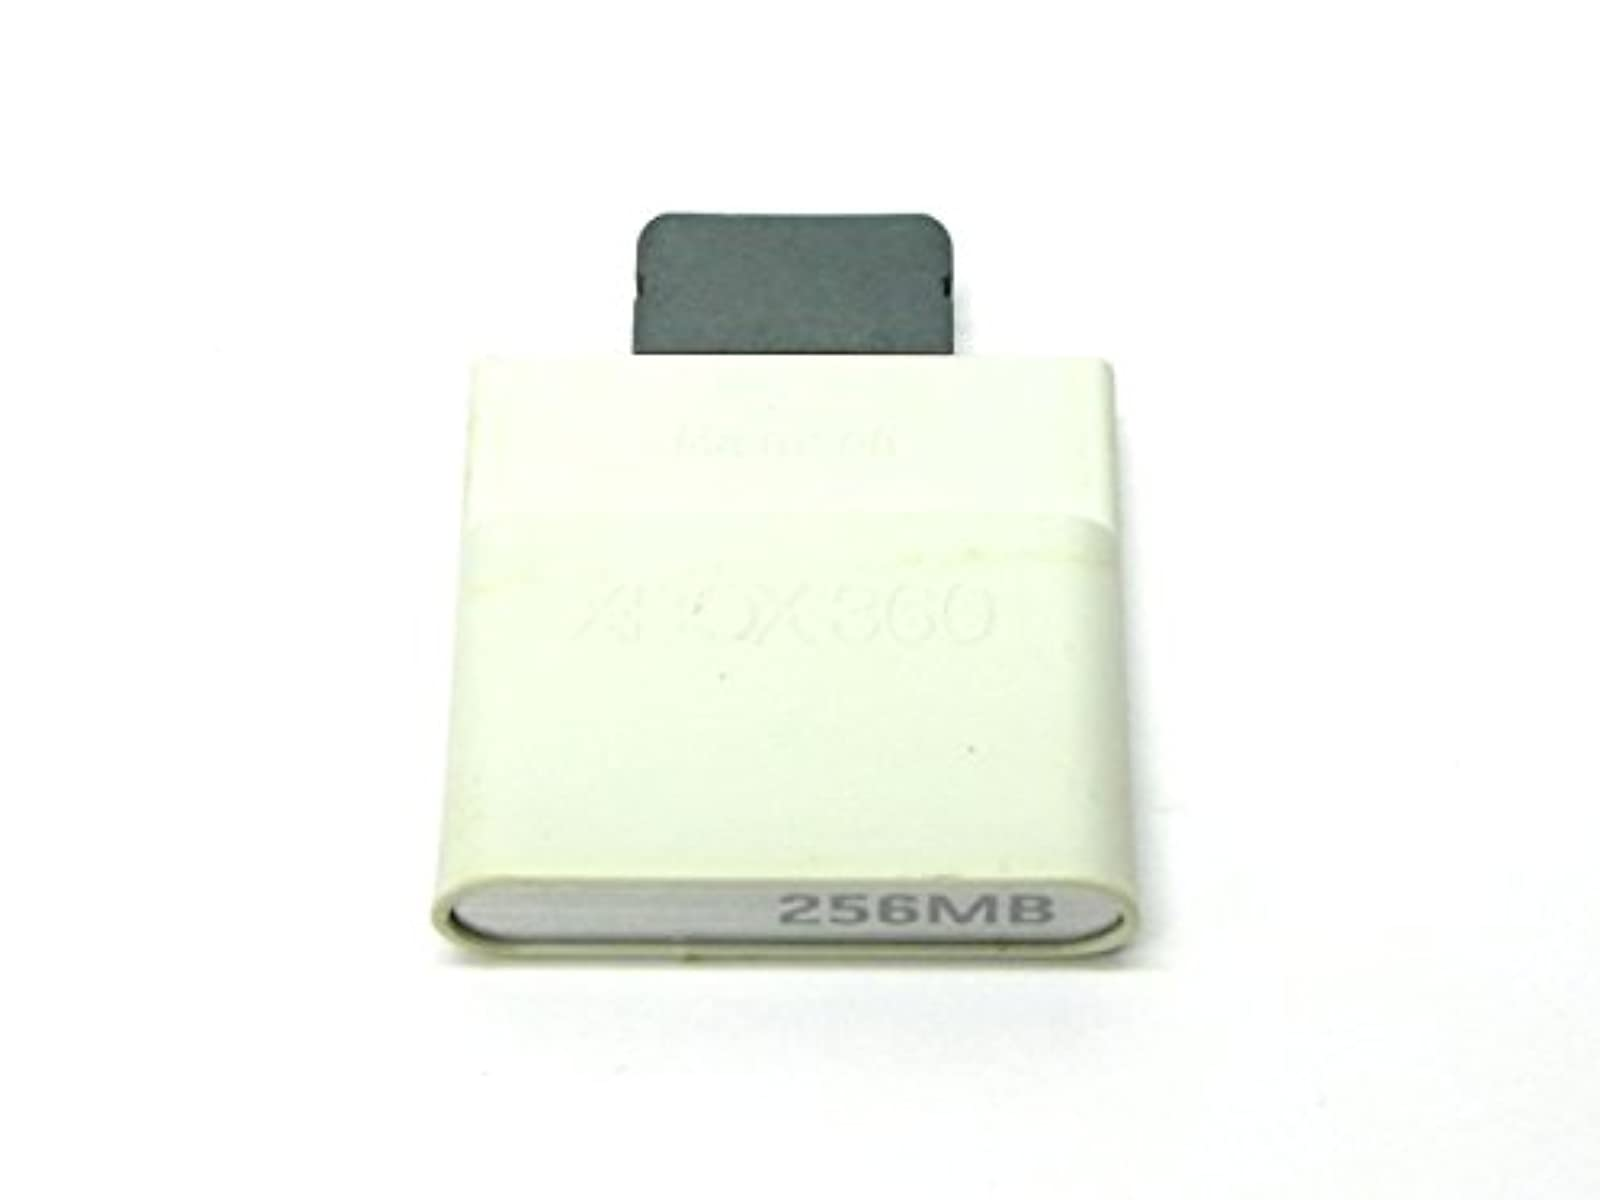 256MB Memory Unit Original Console Only For Xbox 360 Card Expansion